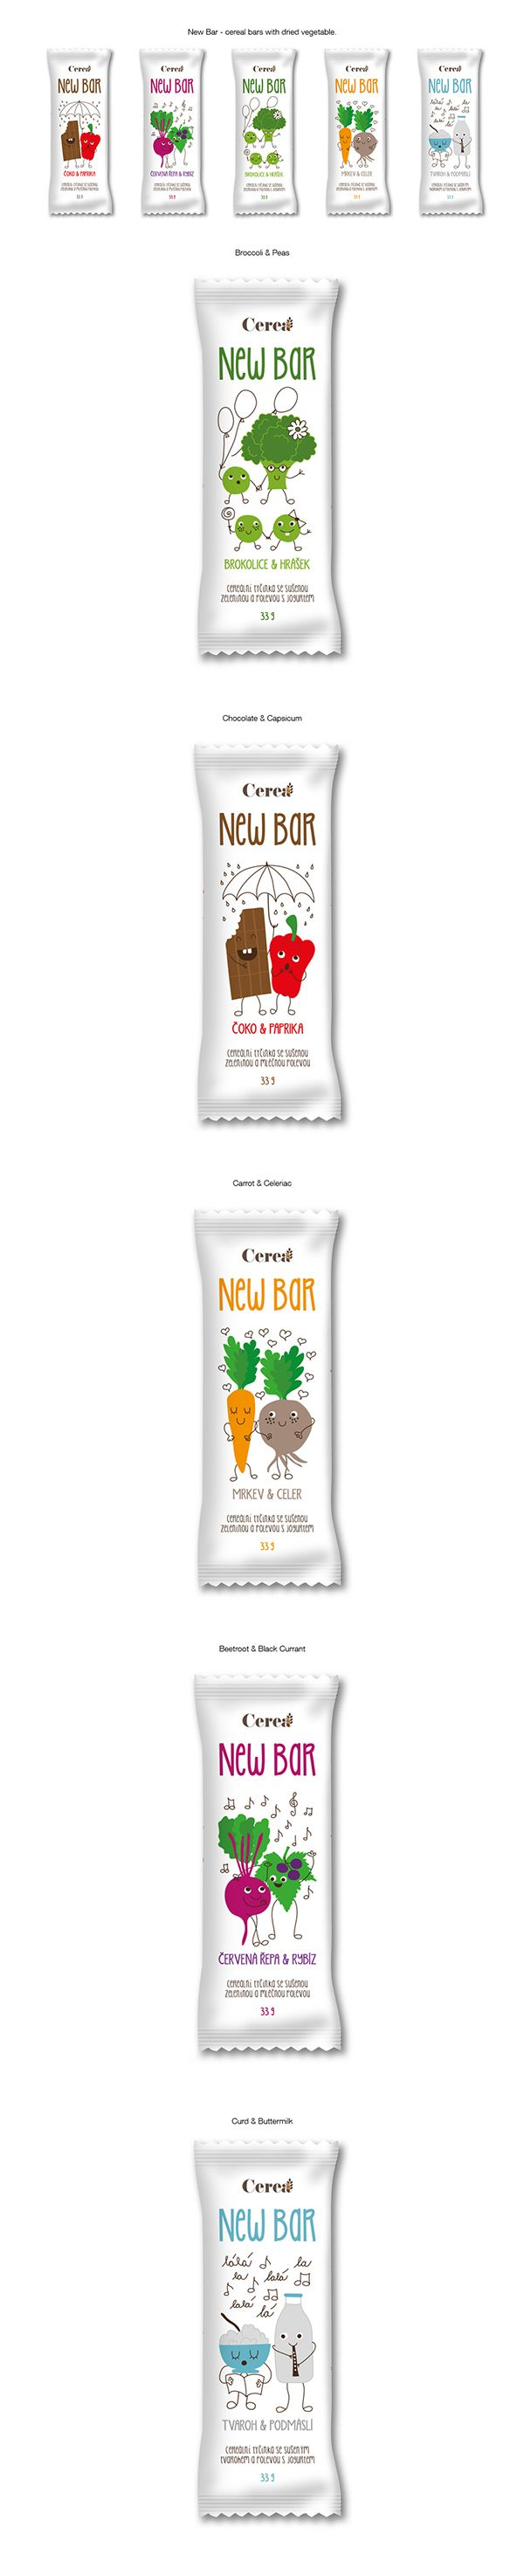 Packaging Design for New Bar - cereal bars with dried vegetable. by Ven Klement on Behance